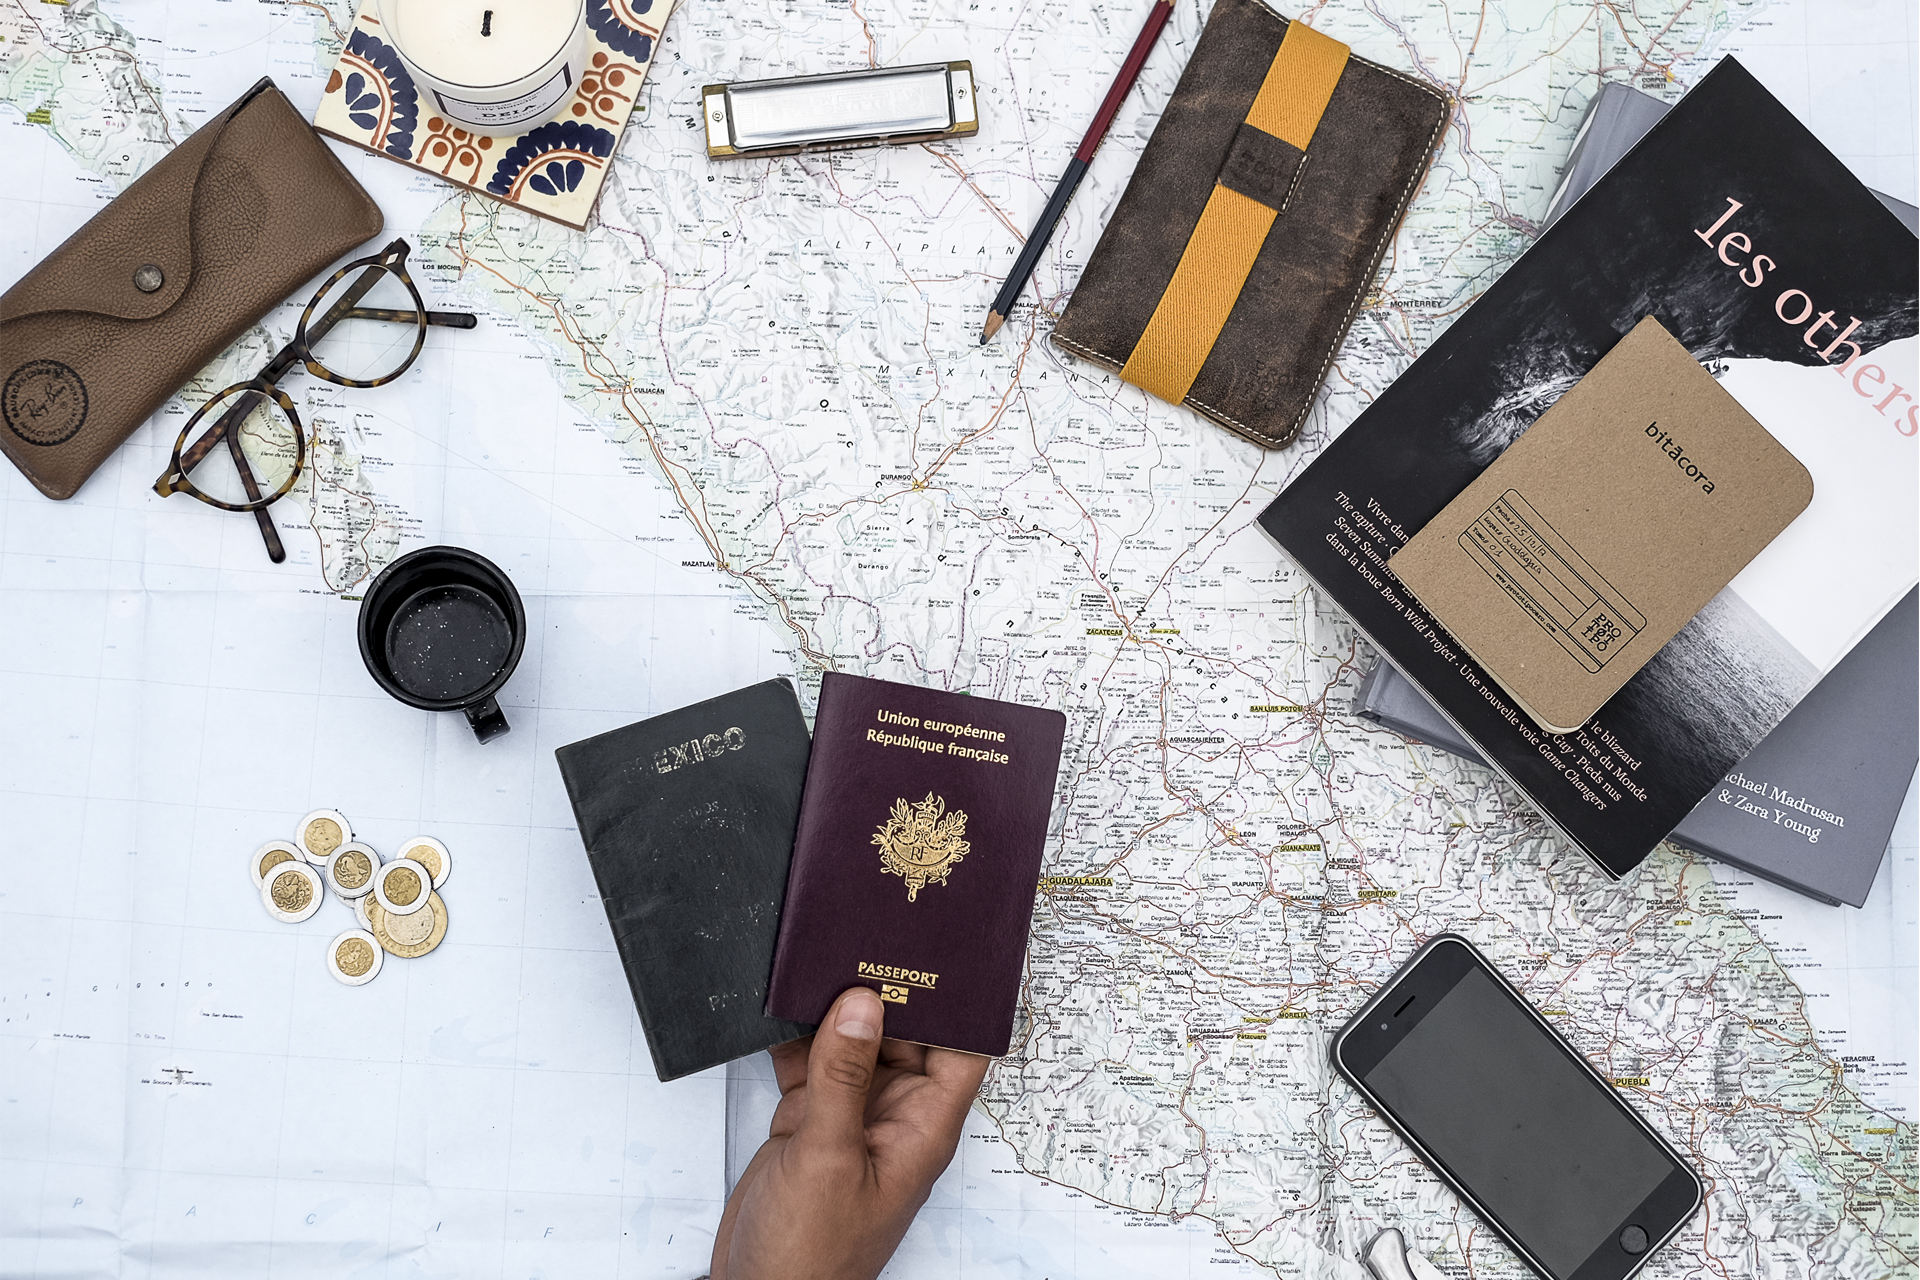 Map of mexico showing how to travel with passport books and glasses